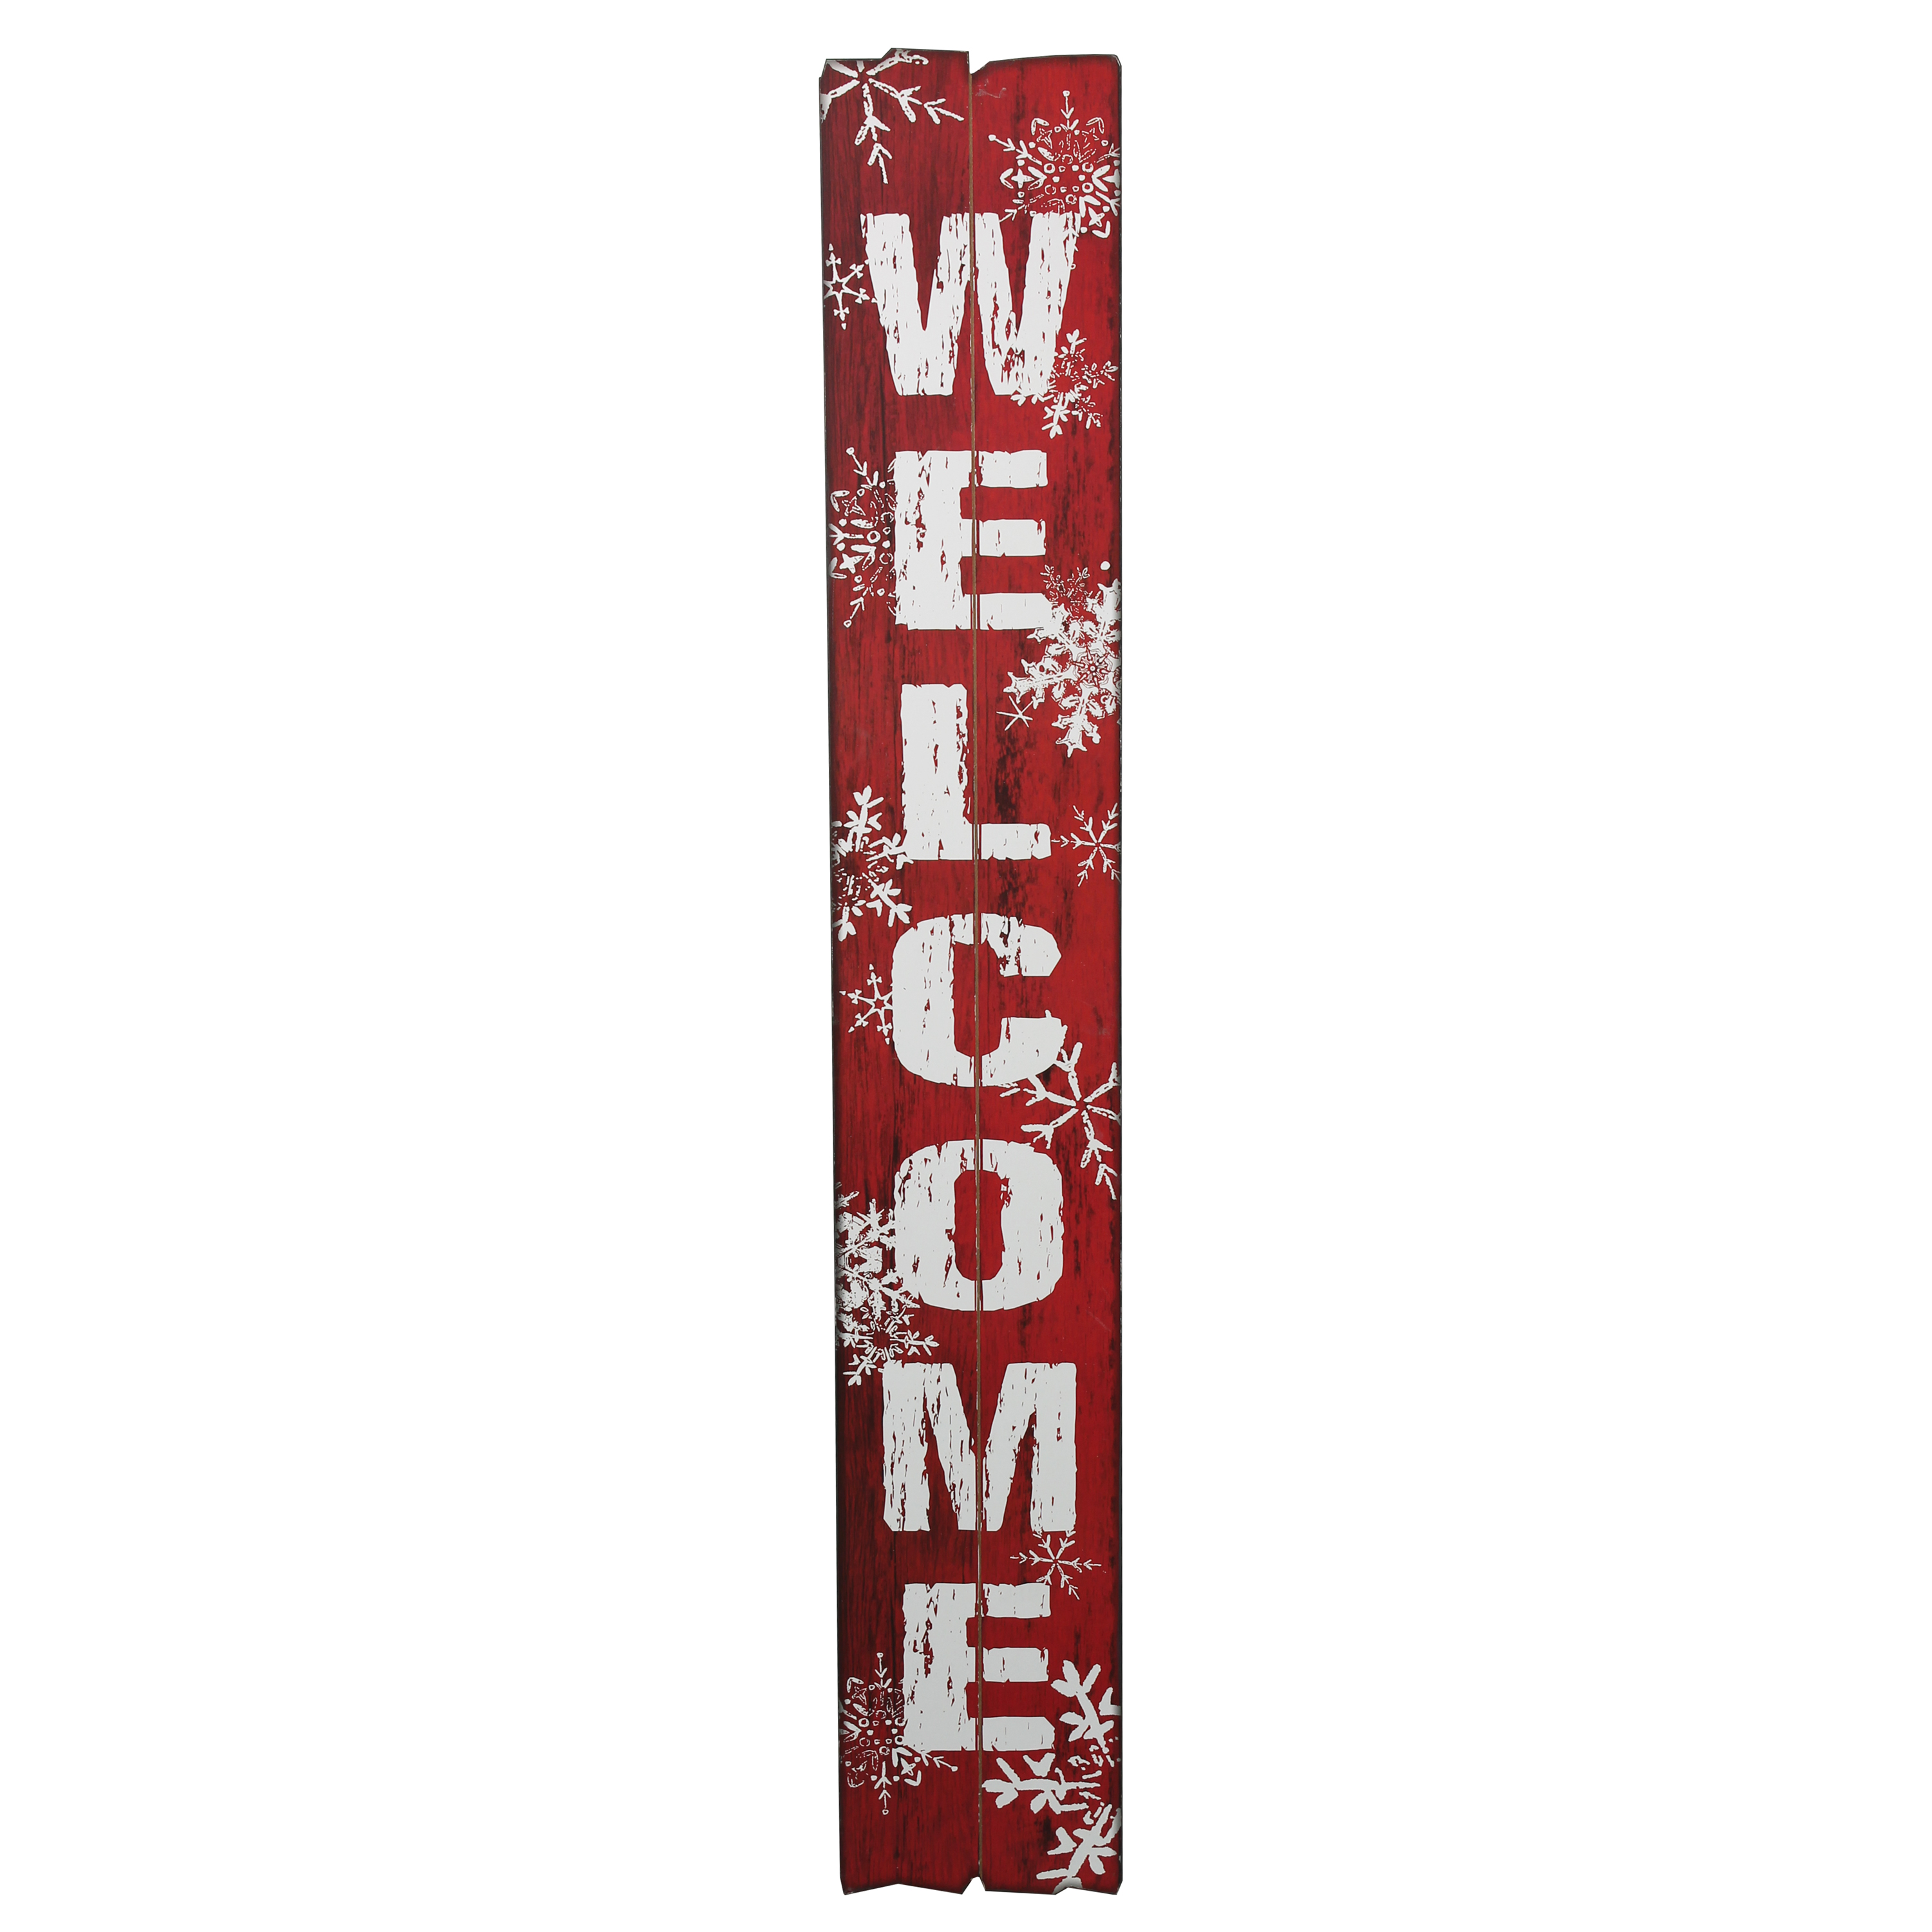 HOLIDAY TIME WELCOME DISTRESSED WOOD SIGN, 9.5 X 60 INCH